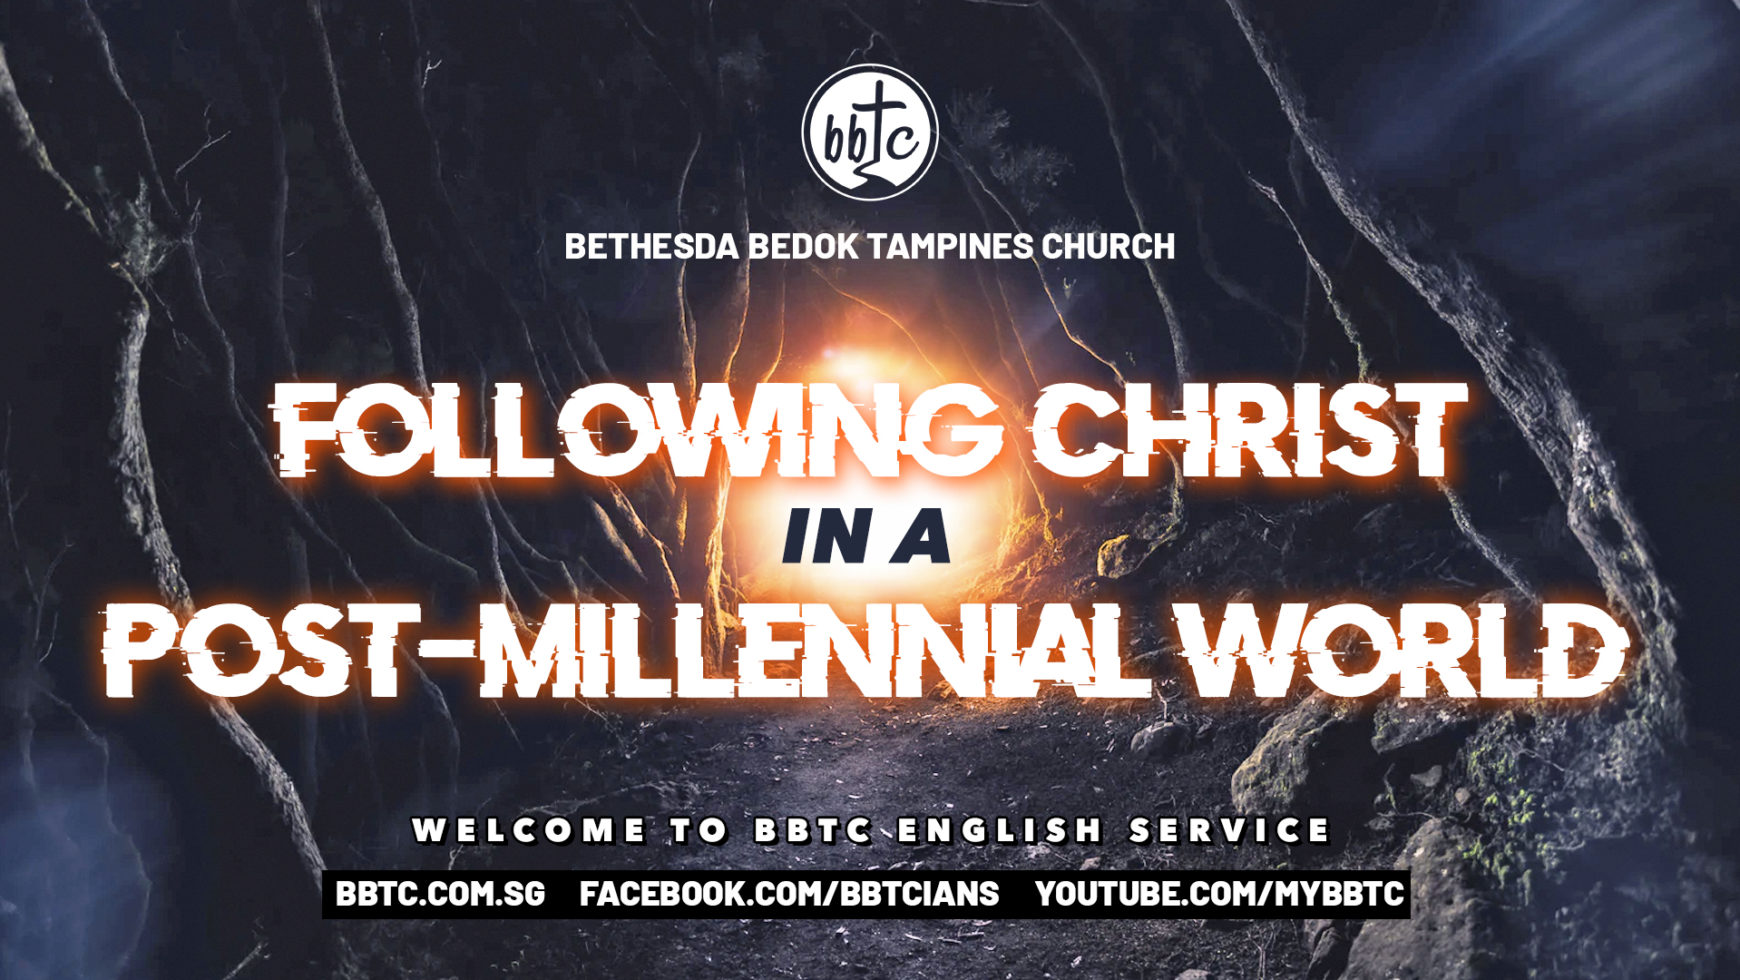 FOLLOWING CHRIST IN A POST-MILLENNIAL WORLD